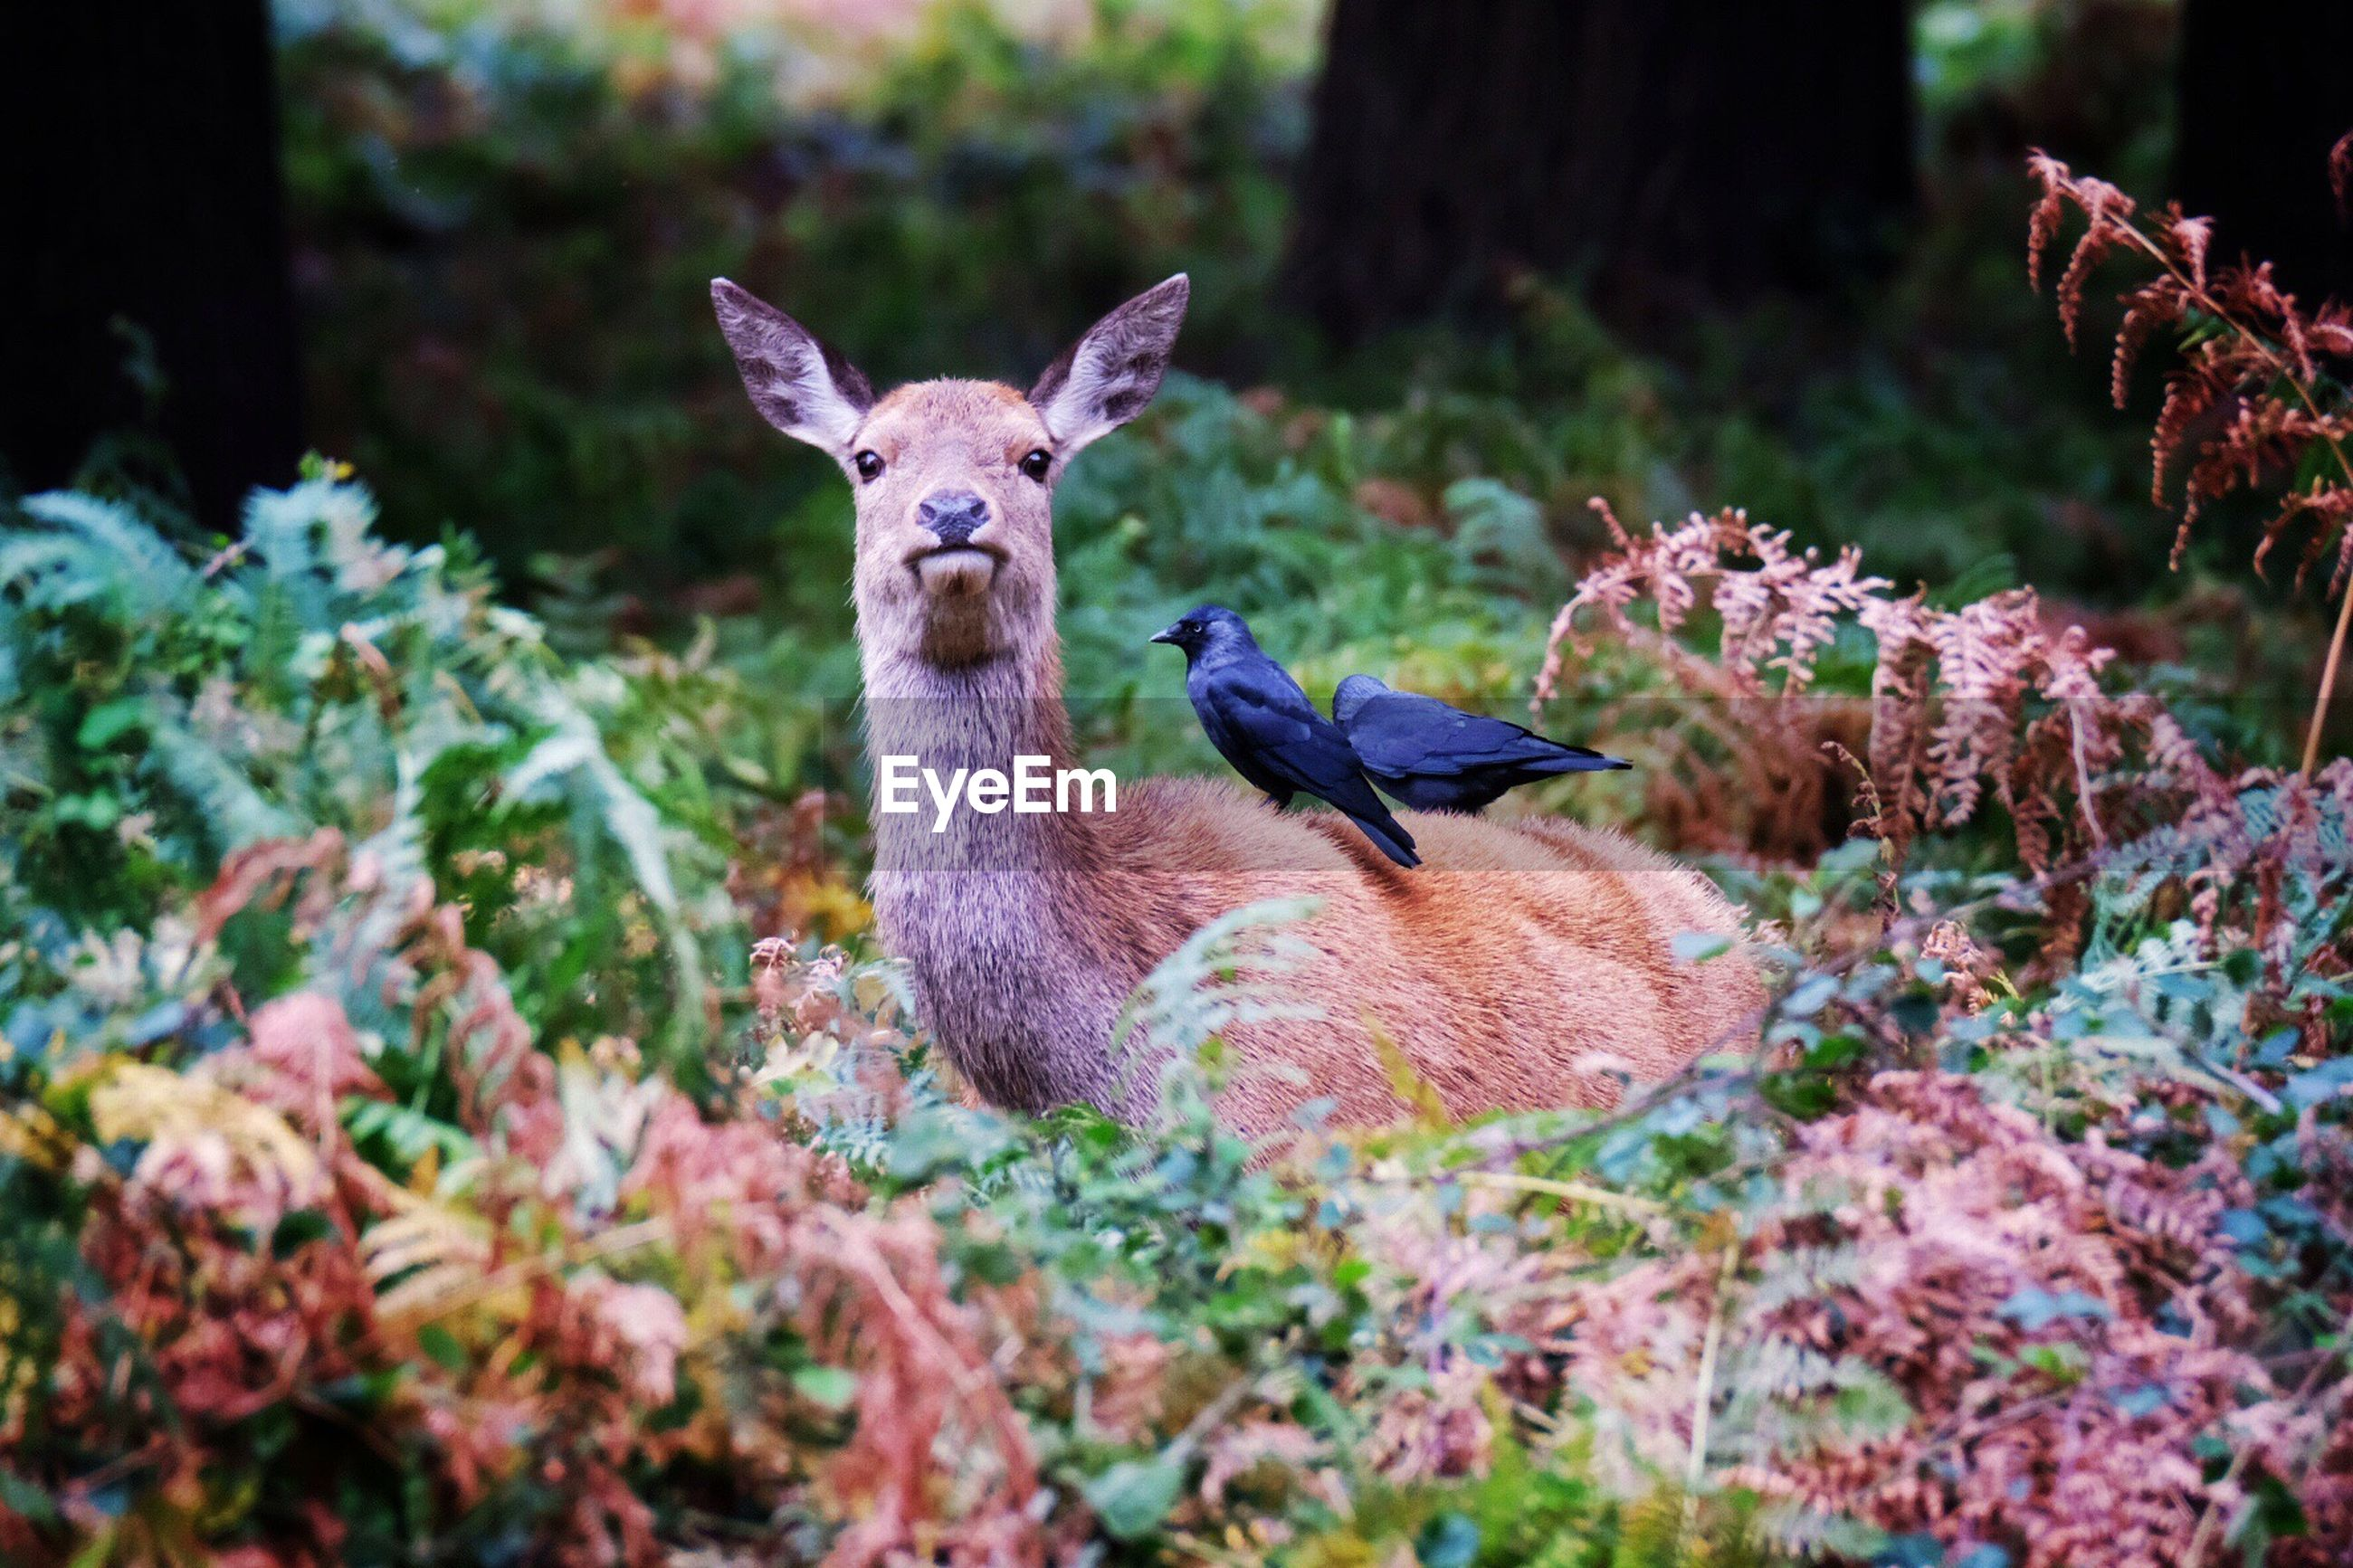 Birds perching on deer amidst plants in forest